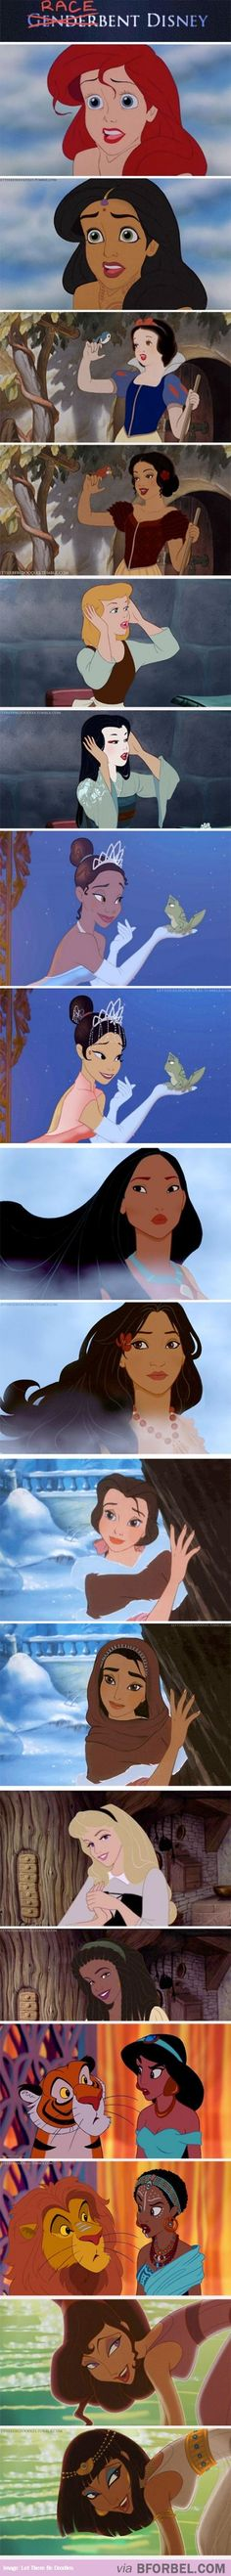 9 Disney Princesses Now Of Different Races… Very interesting. And they still look gorgeous! < They are beautiful. I especially love Meg.